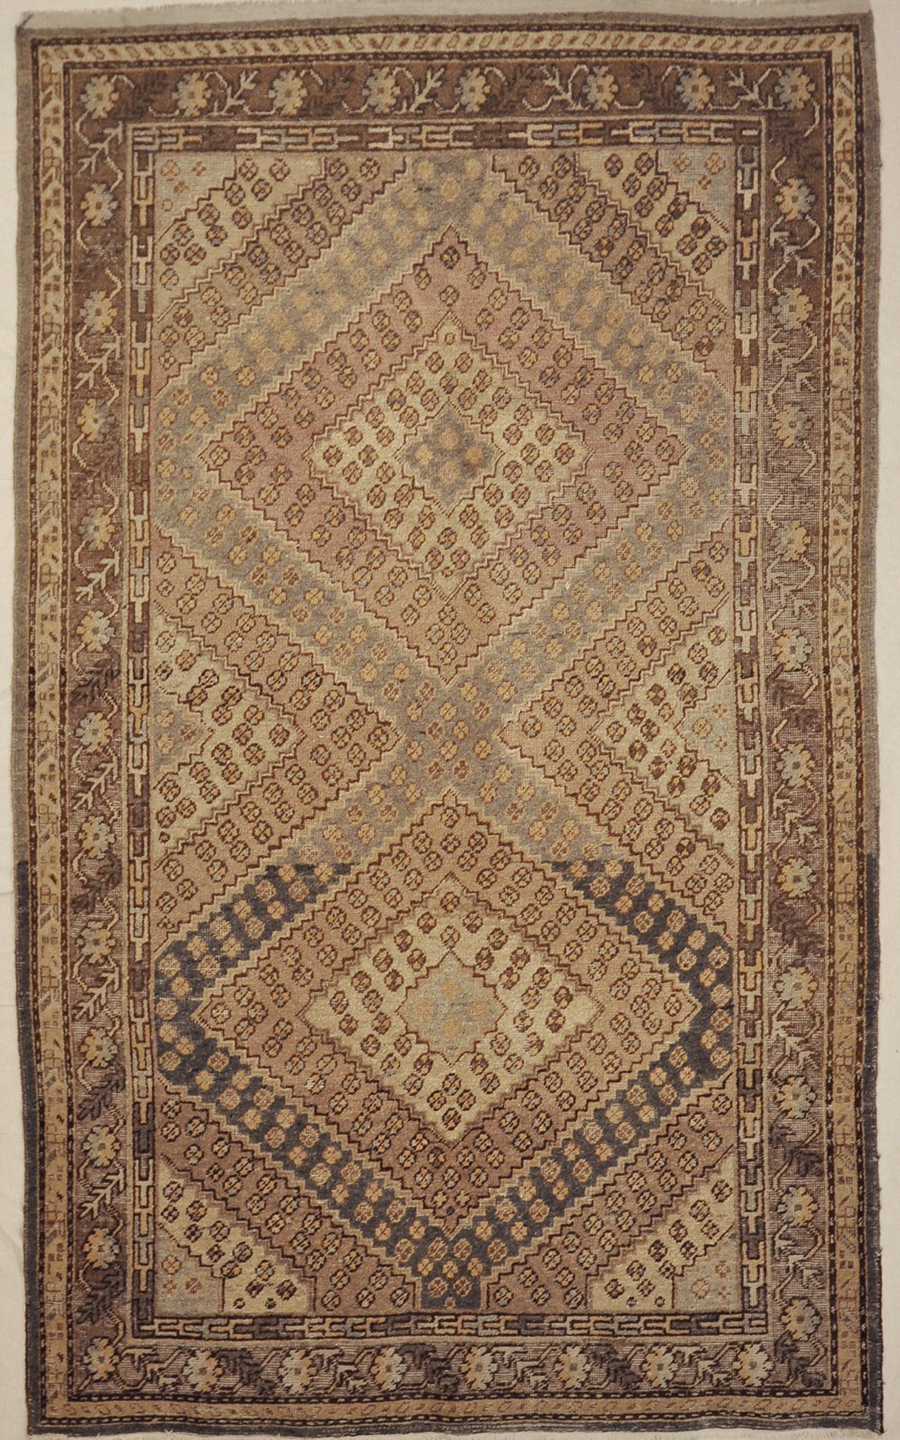 Khotan Rugs & More Oriental Carpets 32174